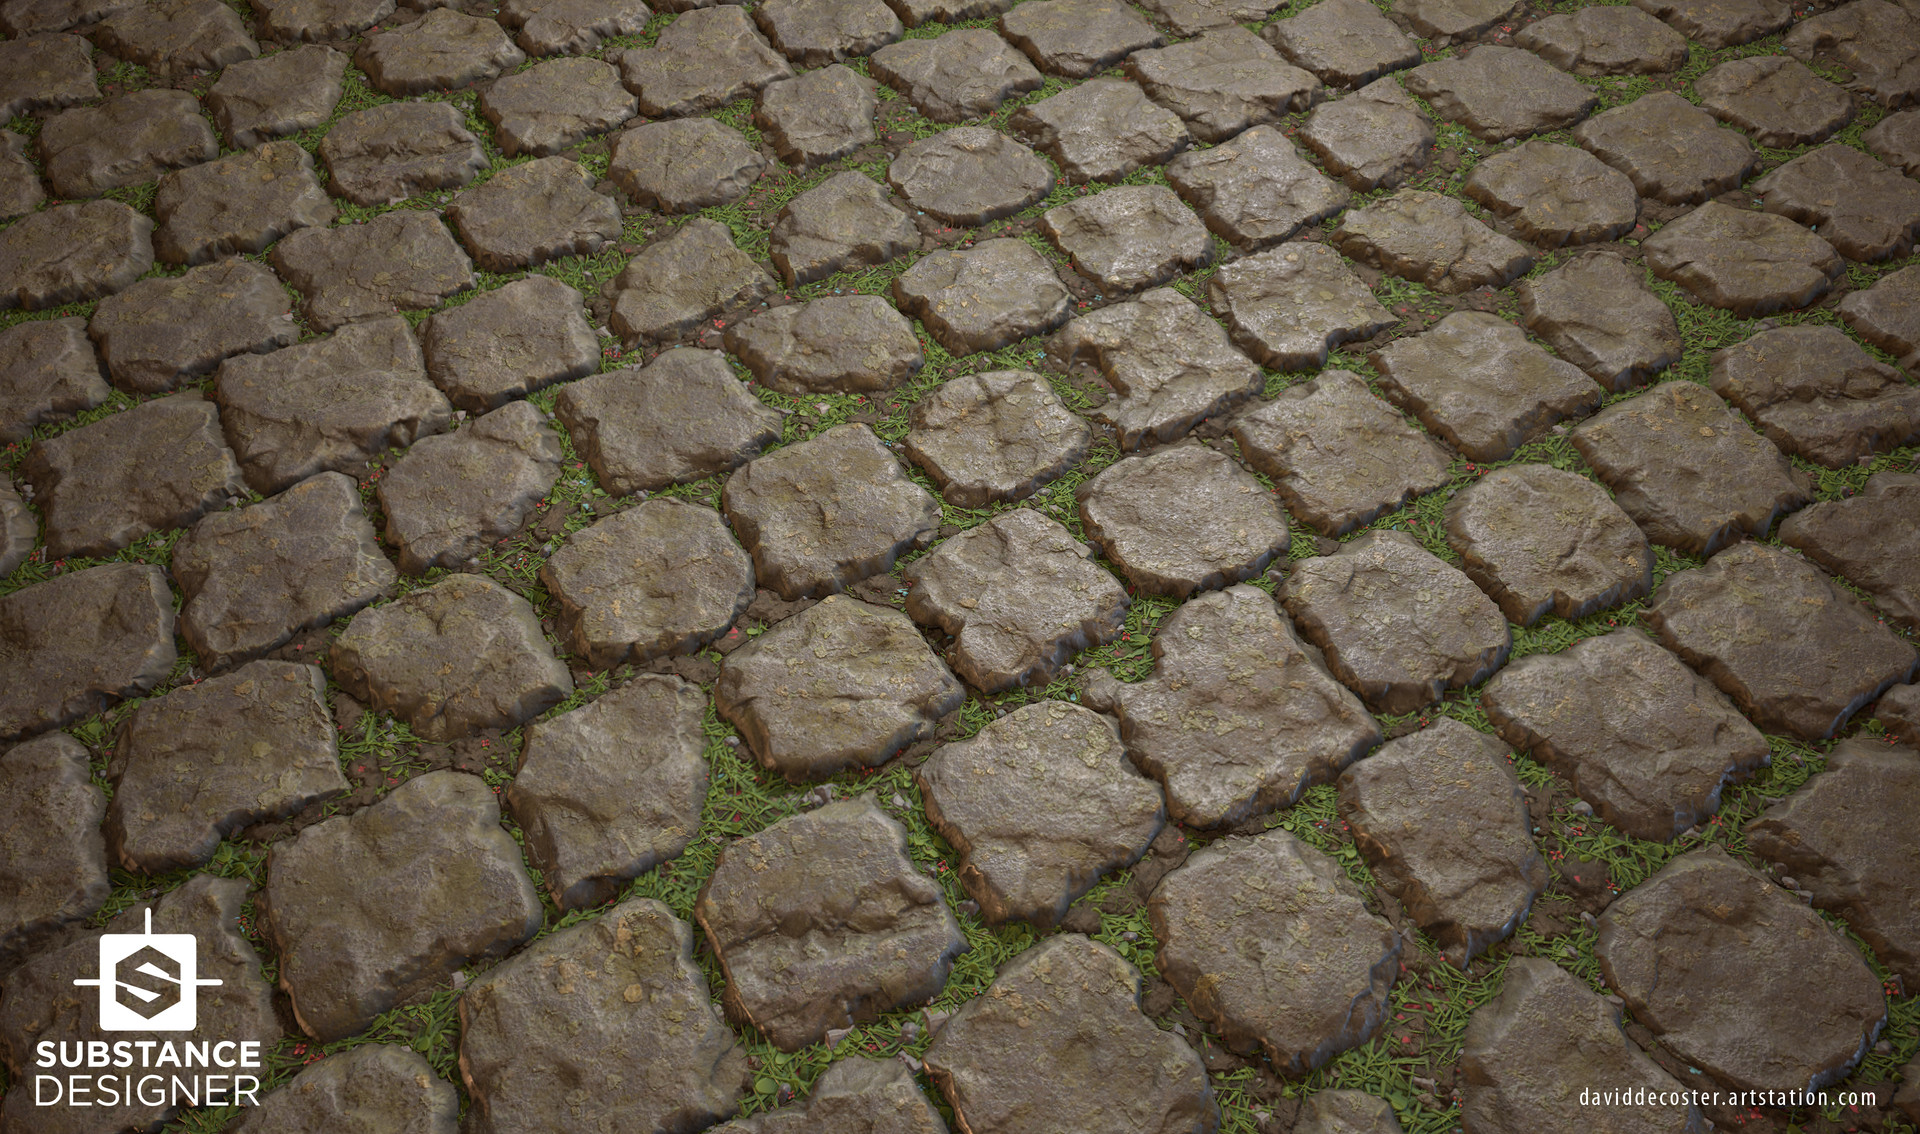 David decoster decoster grassy pavement 02